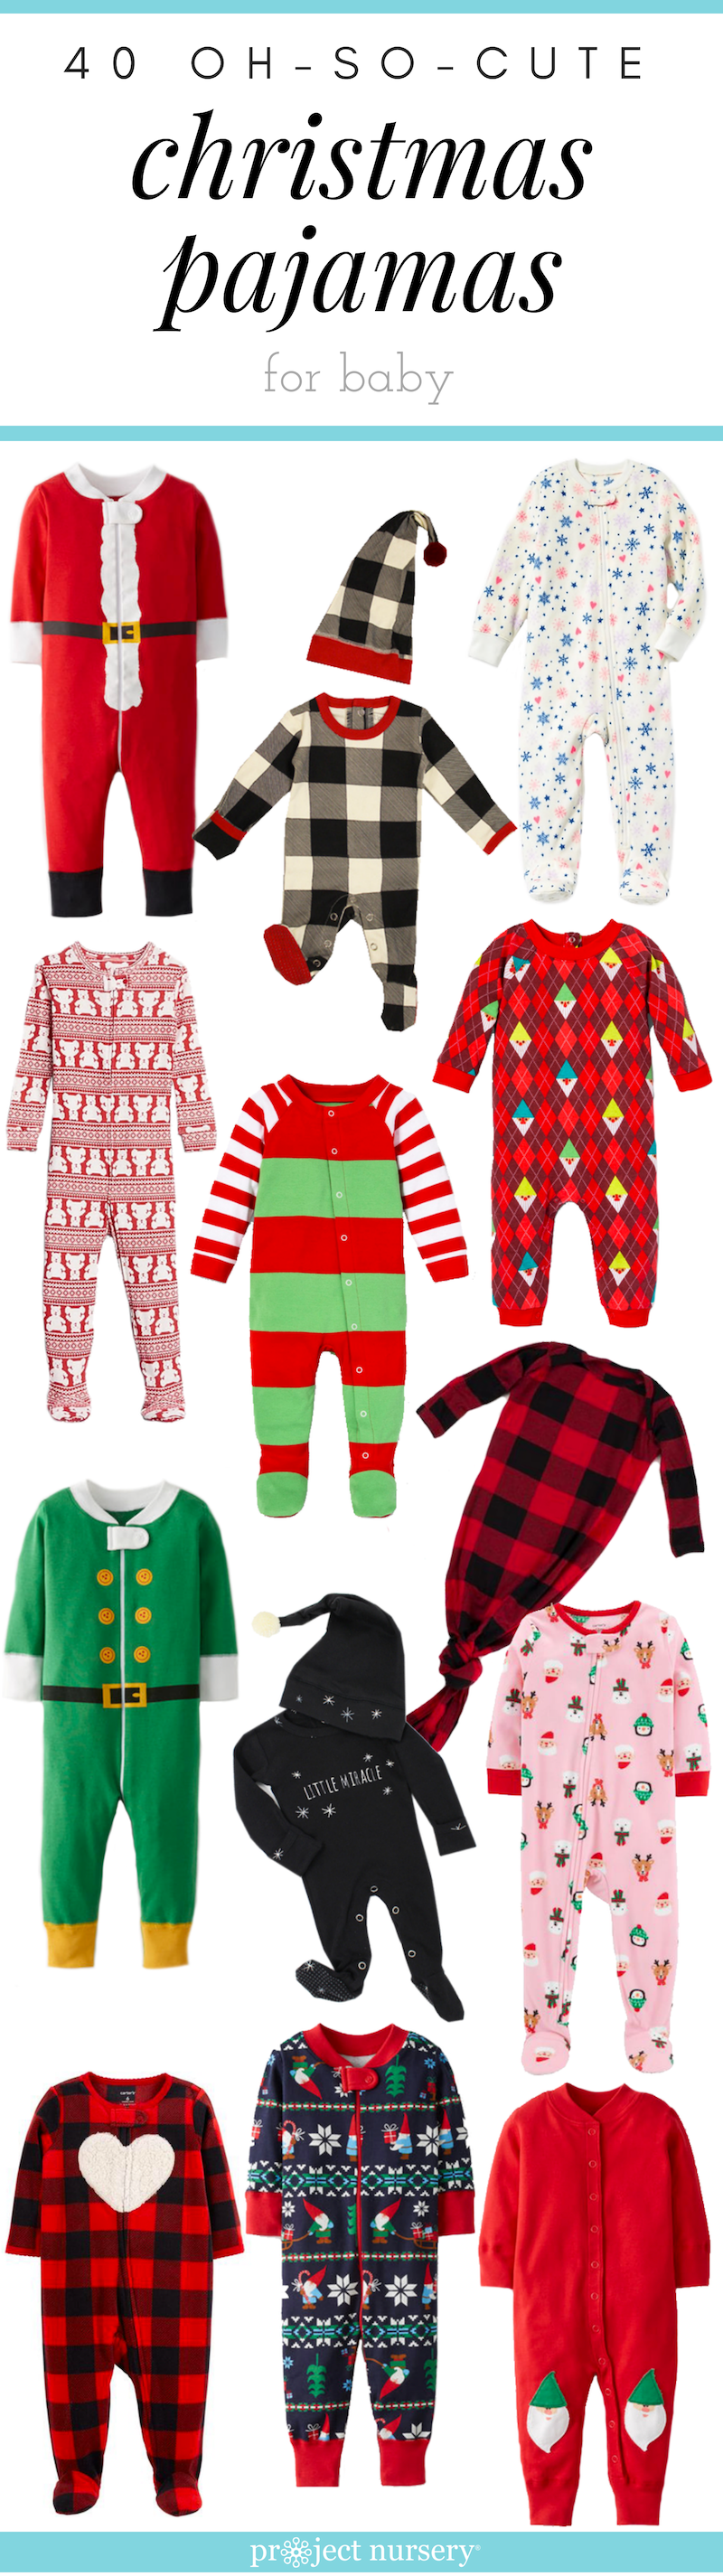 d99c5c38d7 Now we haven't yet pulled off the entire family in matching pajamas, but  companies like Hanna Andersson and even Target it are making it easier for  you to ...